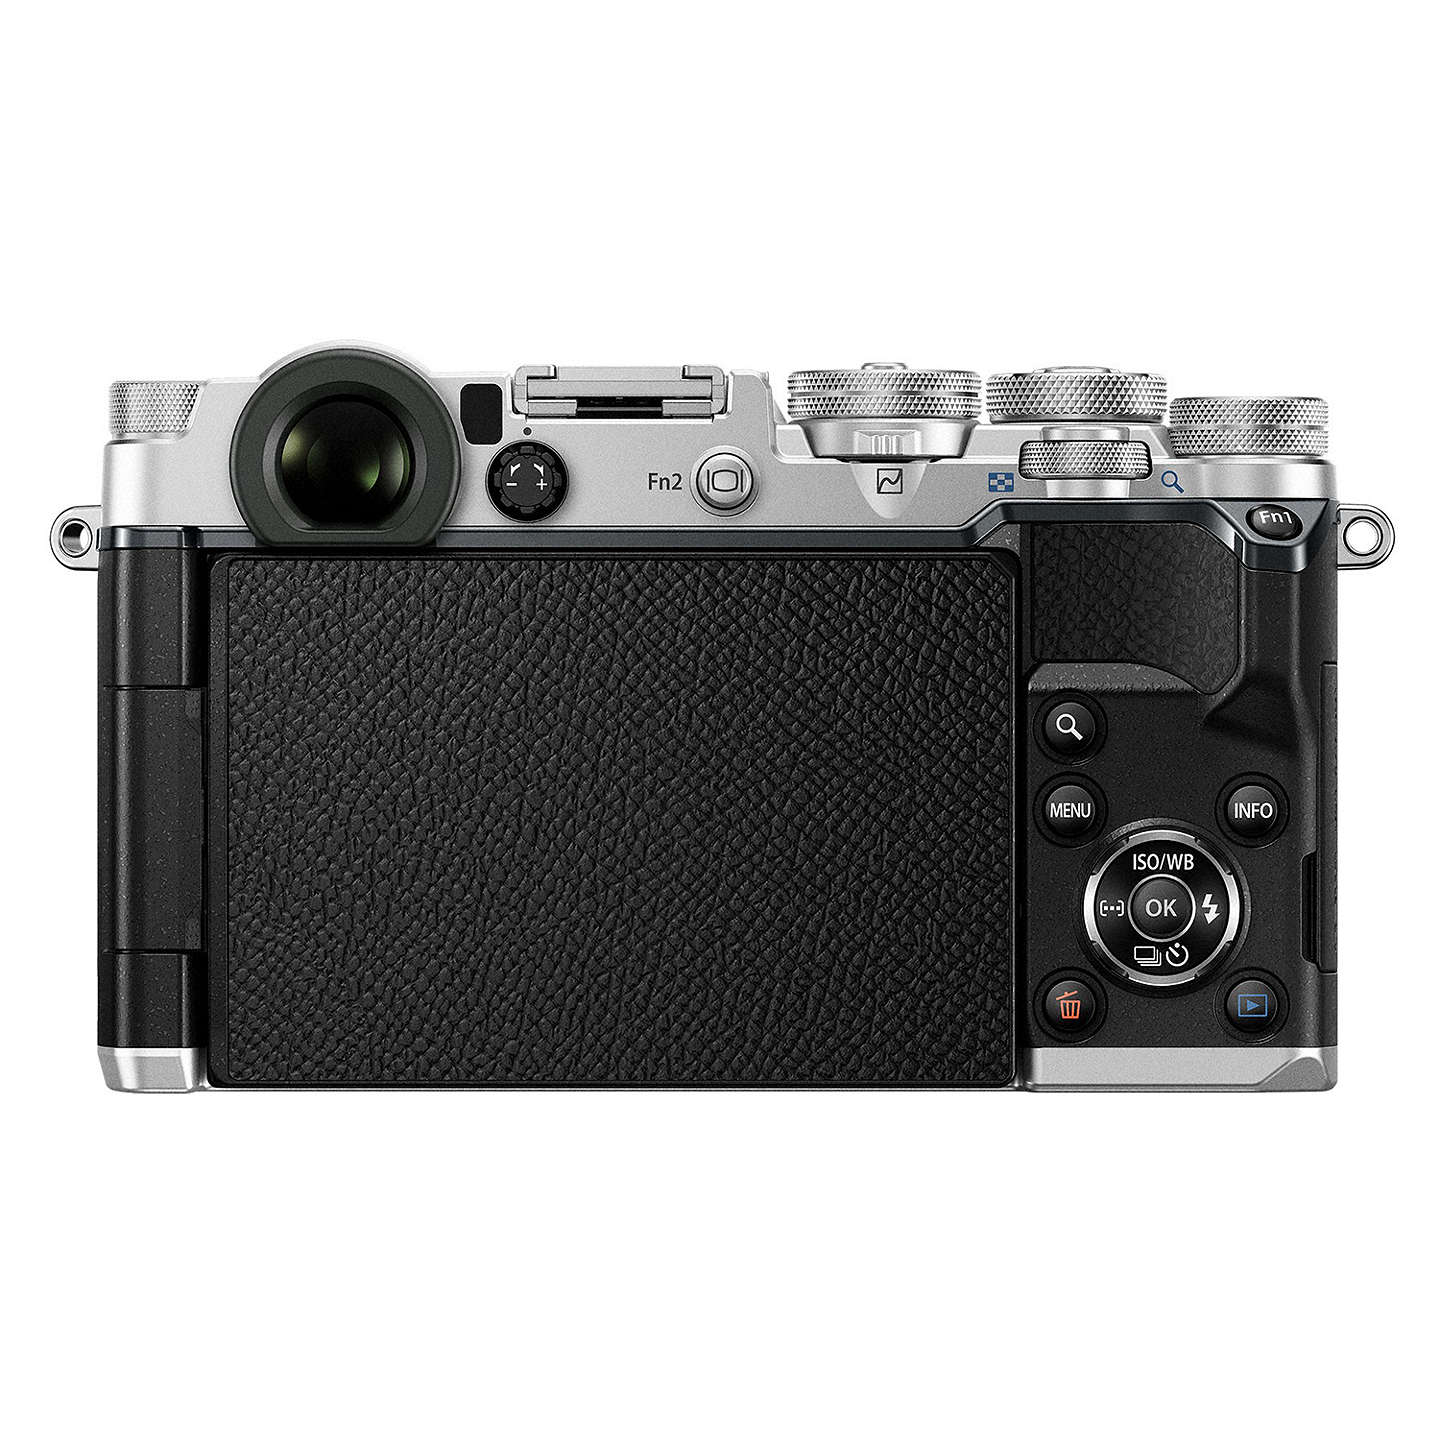 "BuyOlympus Pen F Compact System Camera With M.ZUIKO 17mm Prime Lens, HD 1080p, 20.3MP, Wi-Fi, Front Creative Dial, 5-Axis IS, 3"" Vari-Angle Touch Monitor, Silver Online at johnlewis.com"